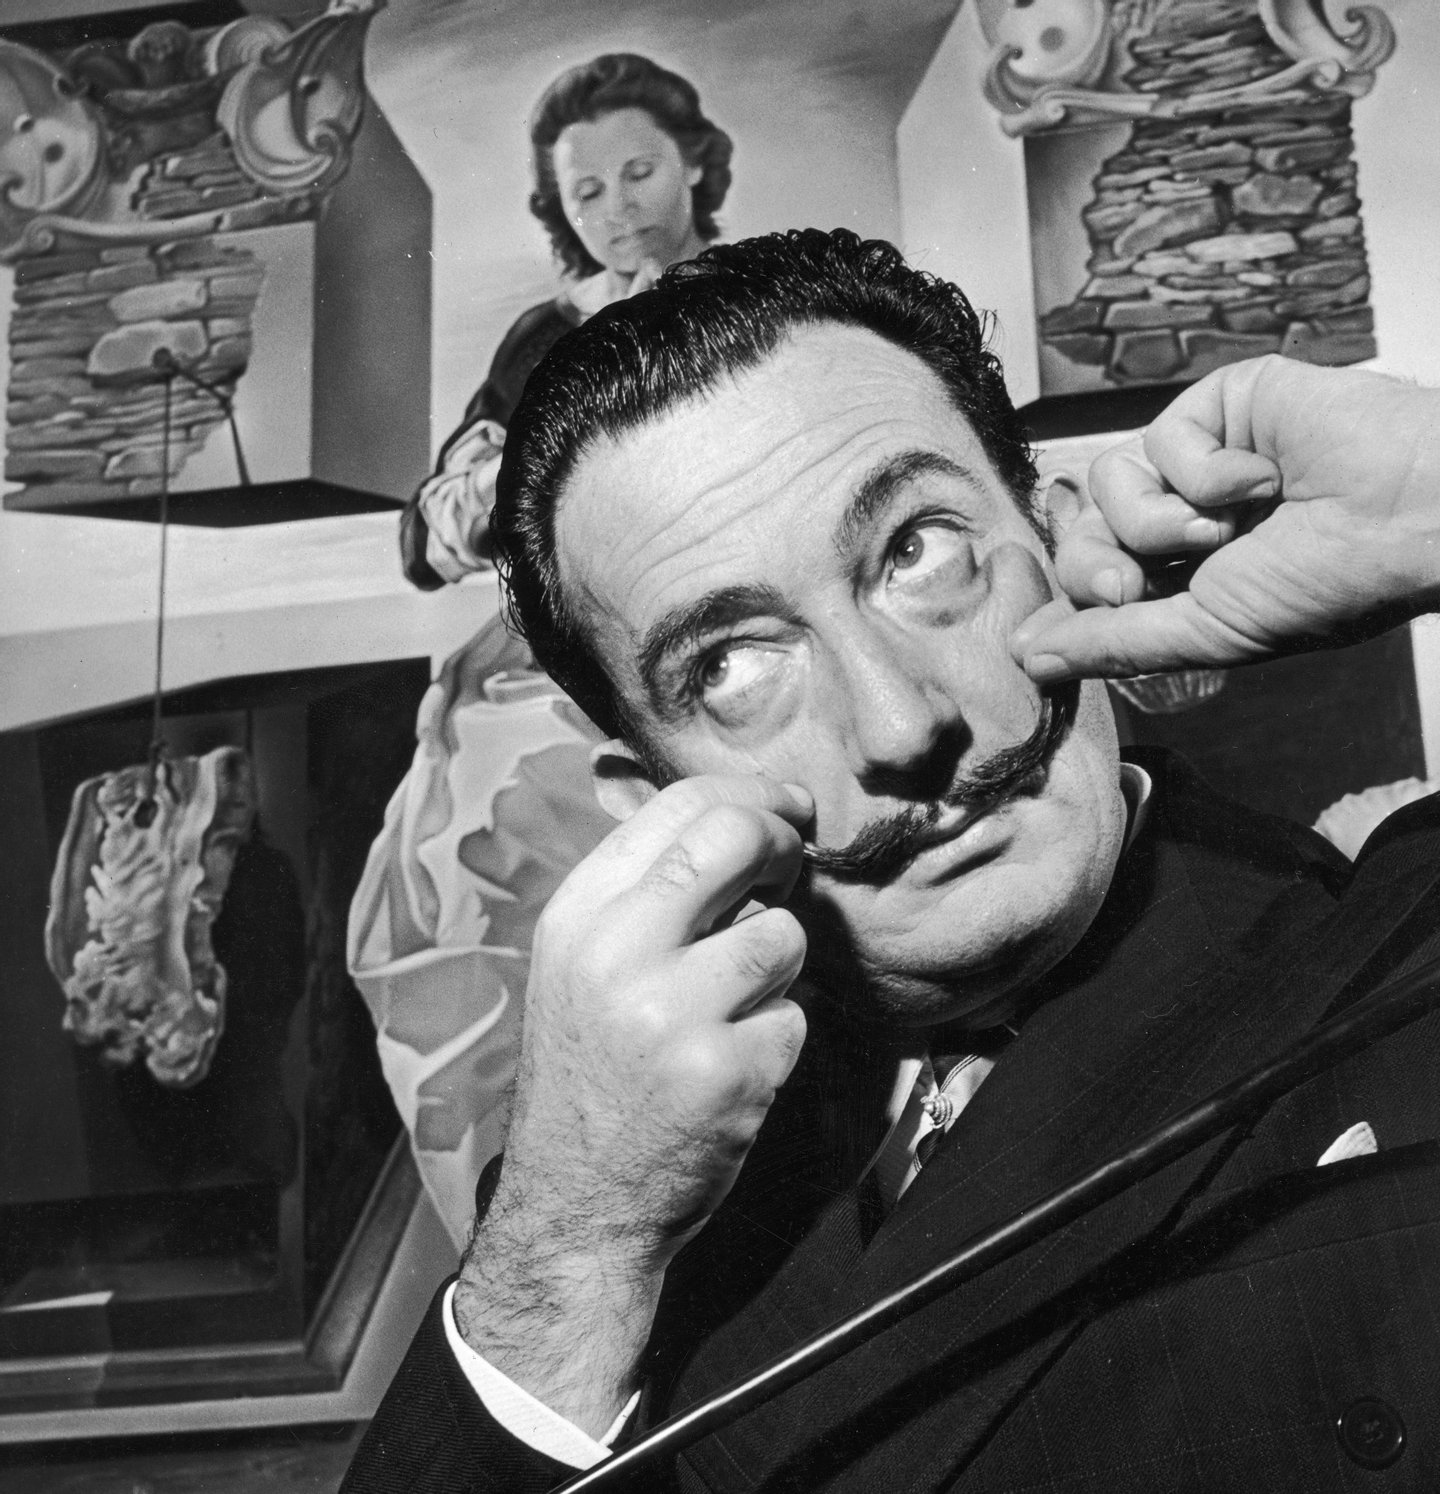 Spanish surrealist artist Salvador Dali (1904 - 1989) in London with one of his paintings entitled 'The Madonna of Port Lligat', December 1951. (Photo by George Konig/Keystone Features/Getty Images)